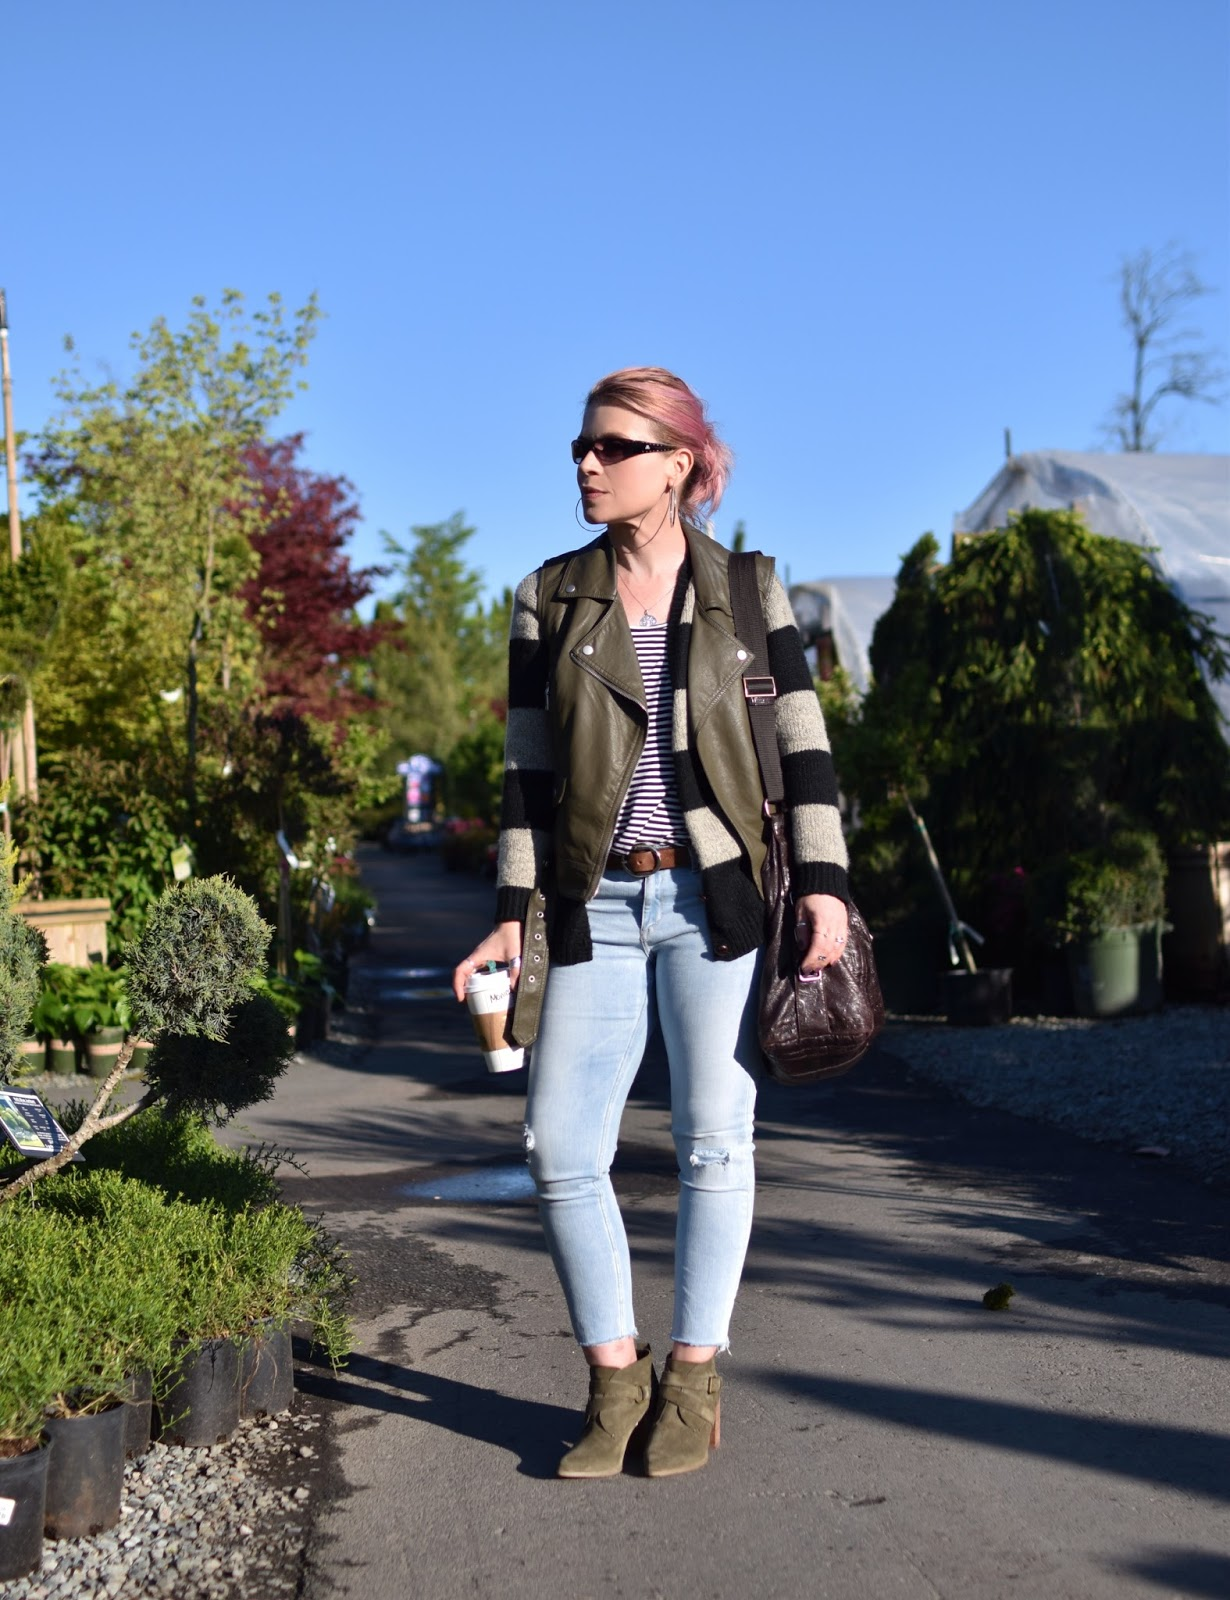 Monika Faulkner outfit inspiration - layered stripes with a moto vest, skinny jeans, and booties